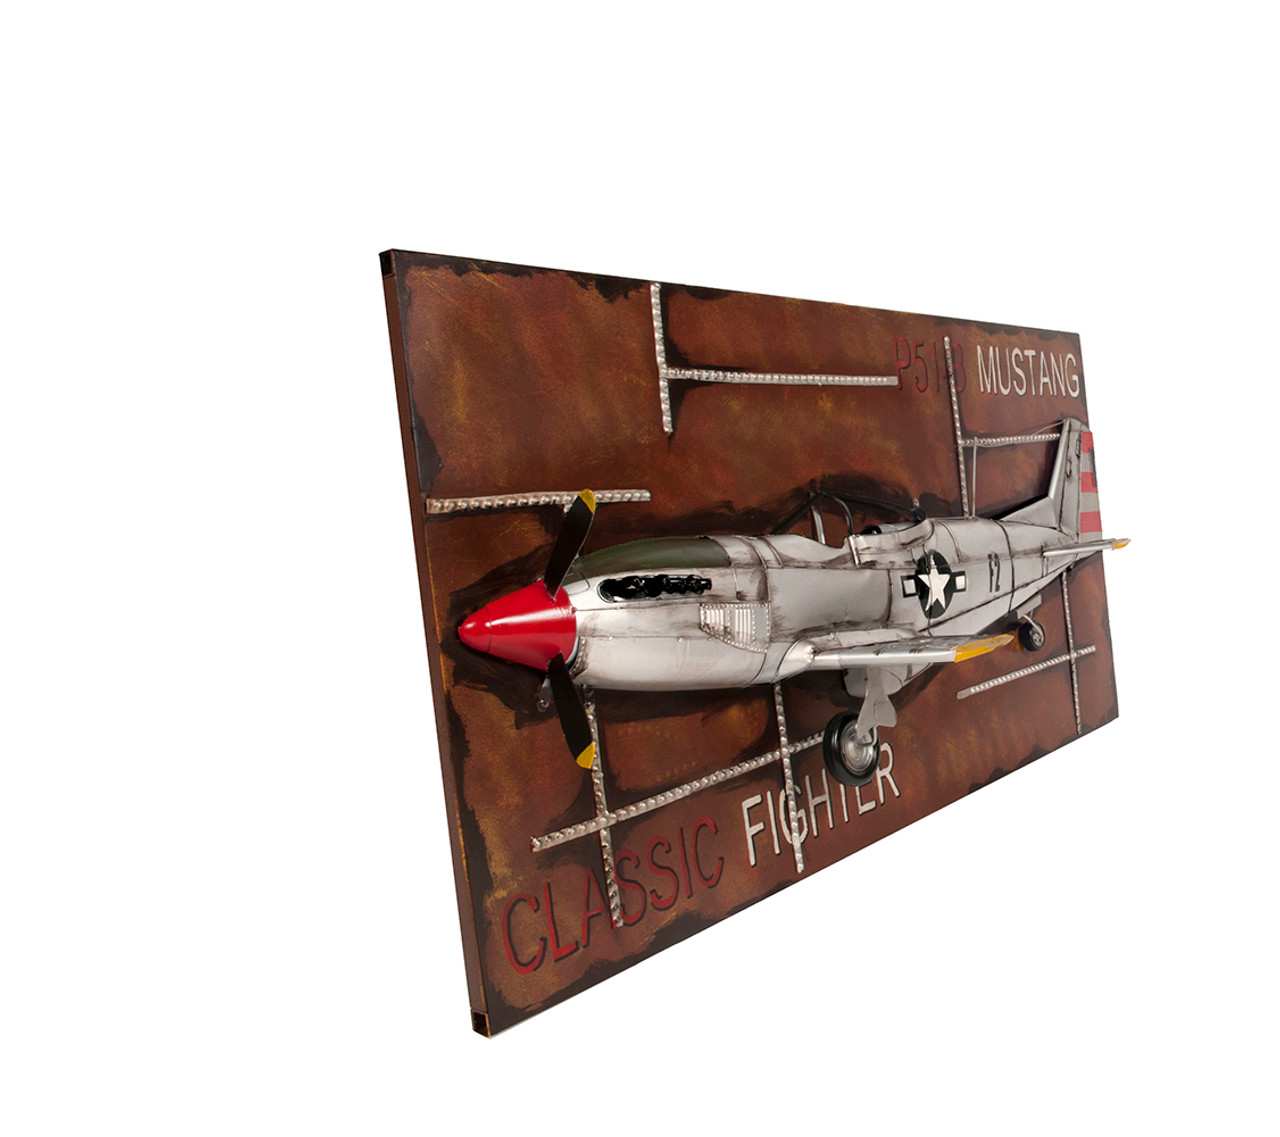 Framed 1943 Mustang P-51B Classic Fighter 3D Model Airplane